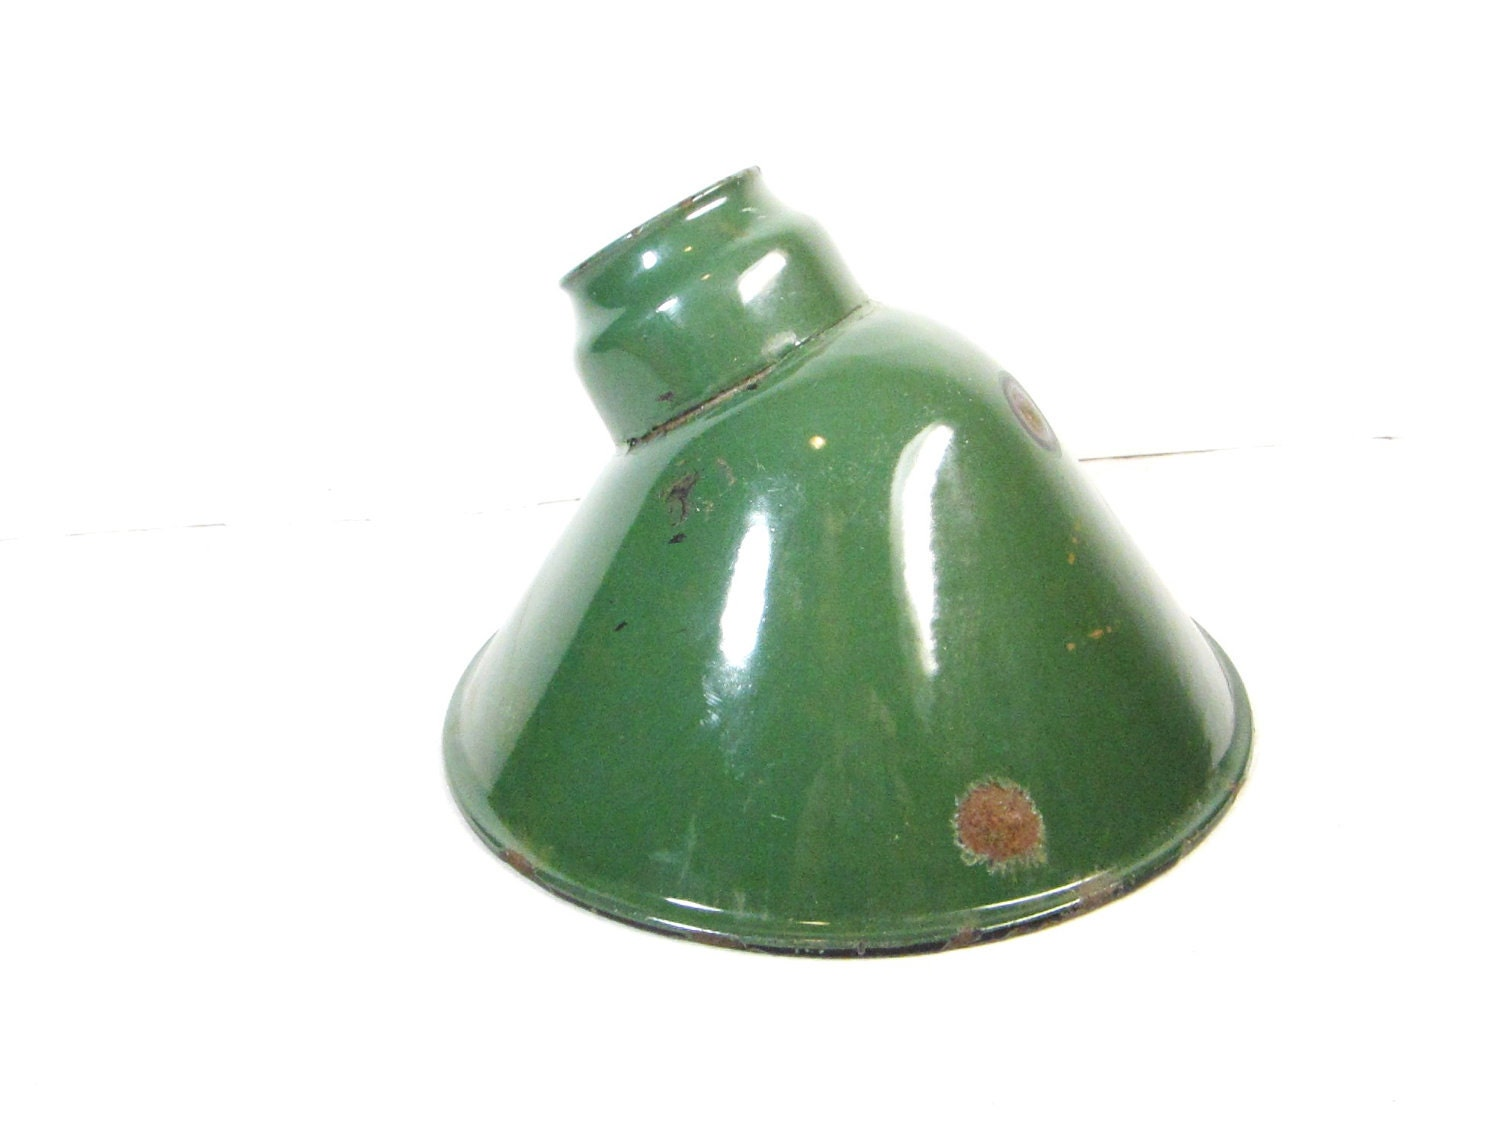 Antique Green Porcelain Light Shade Industrial Metal Lamp